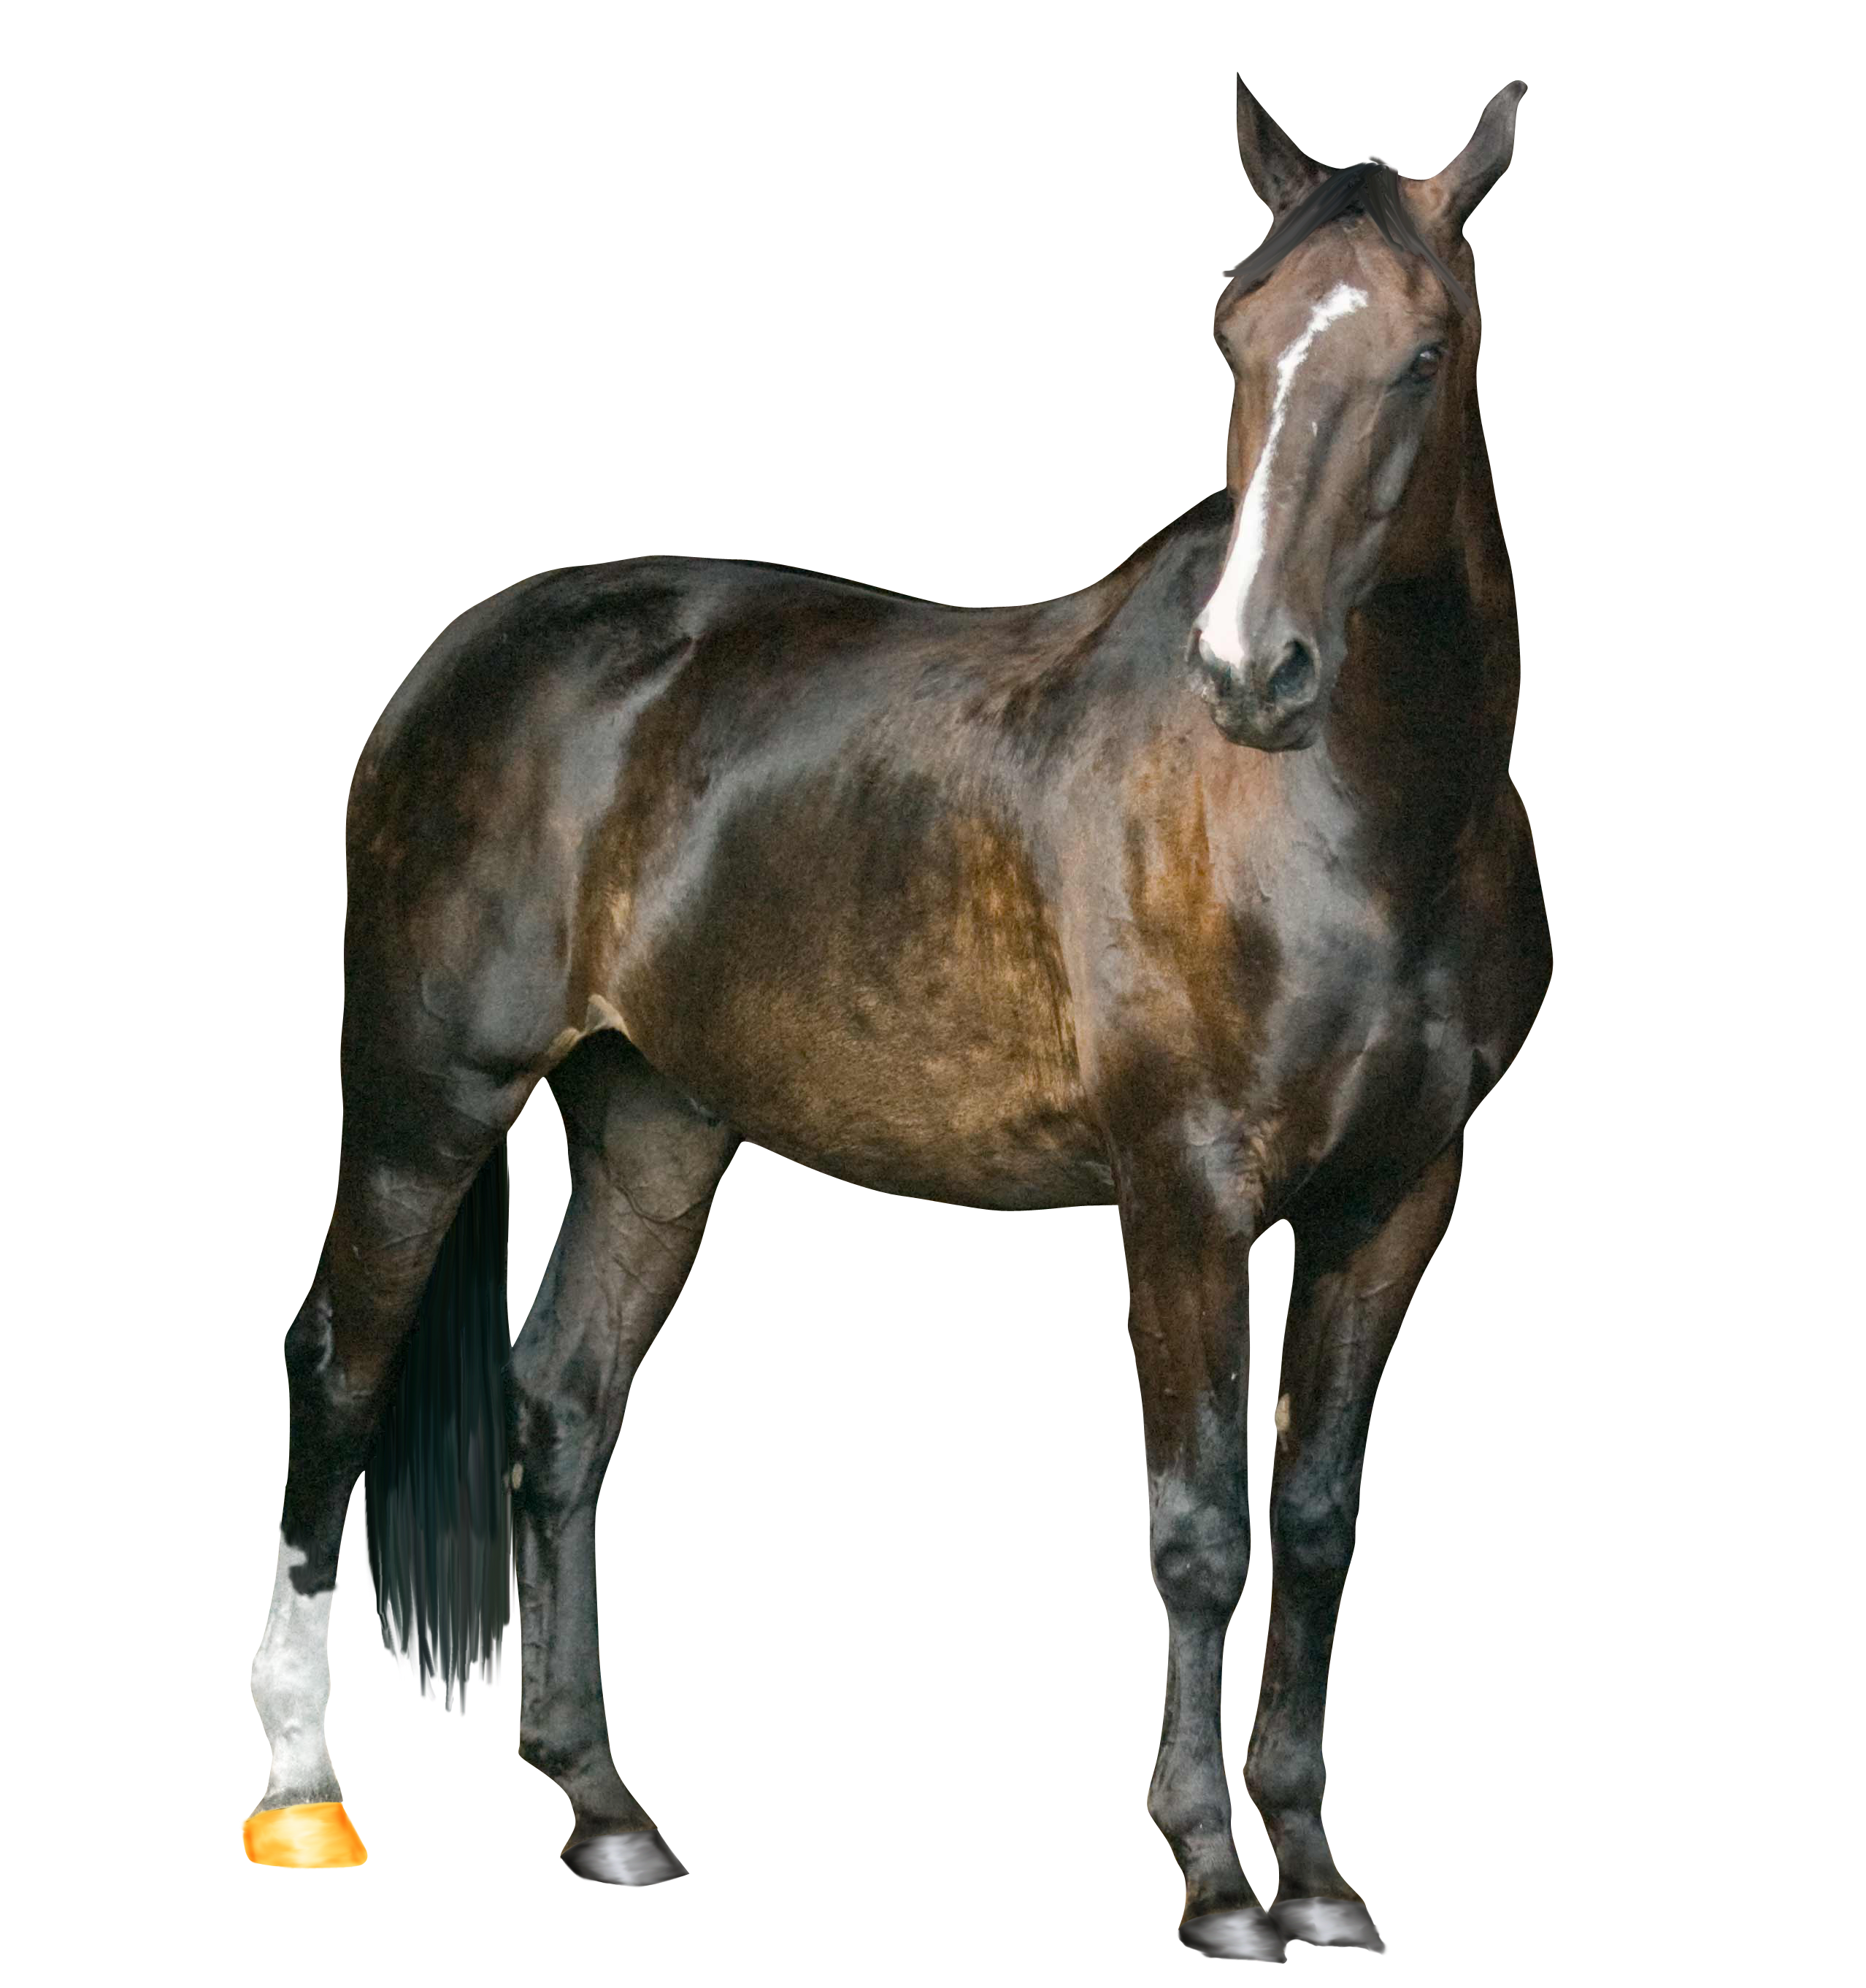 Horse PNG Image PNG Image.